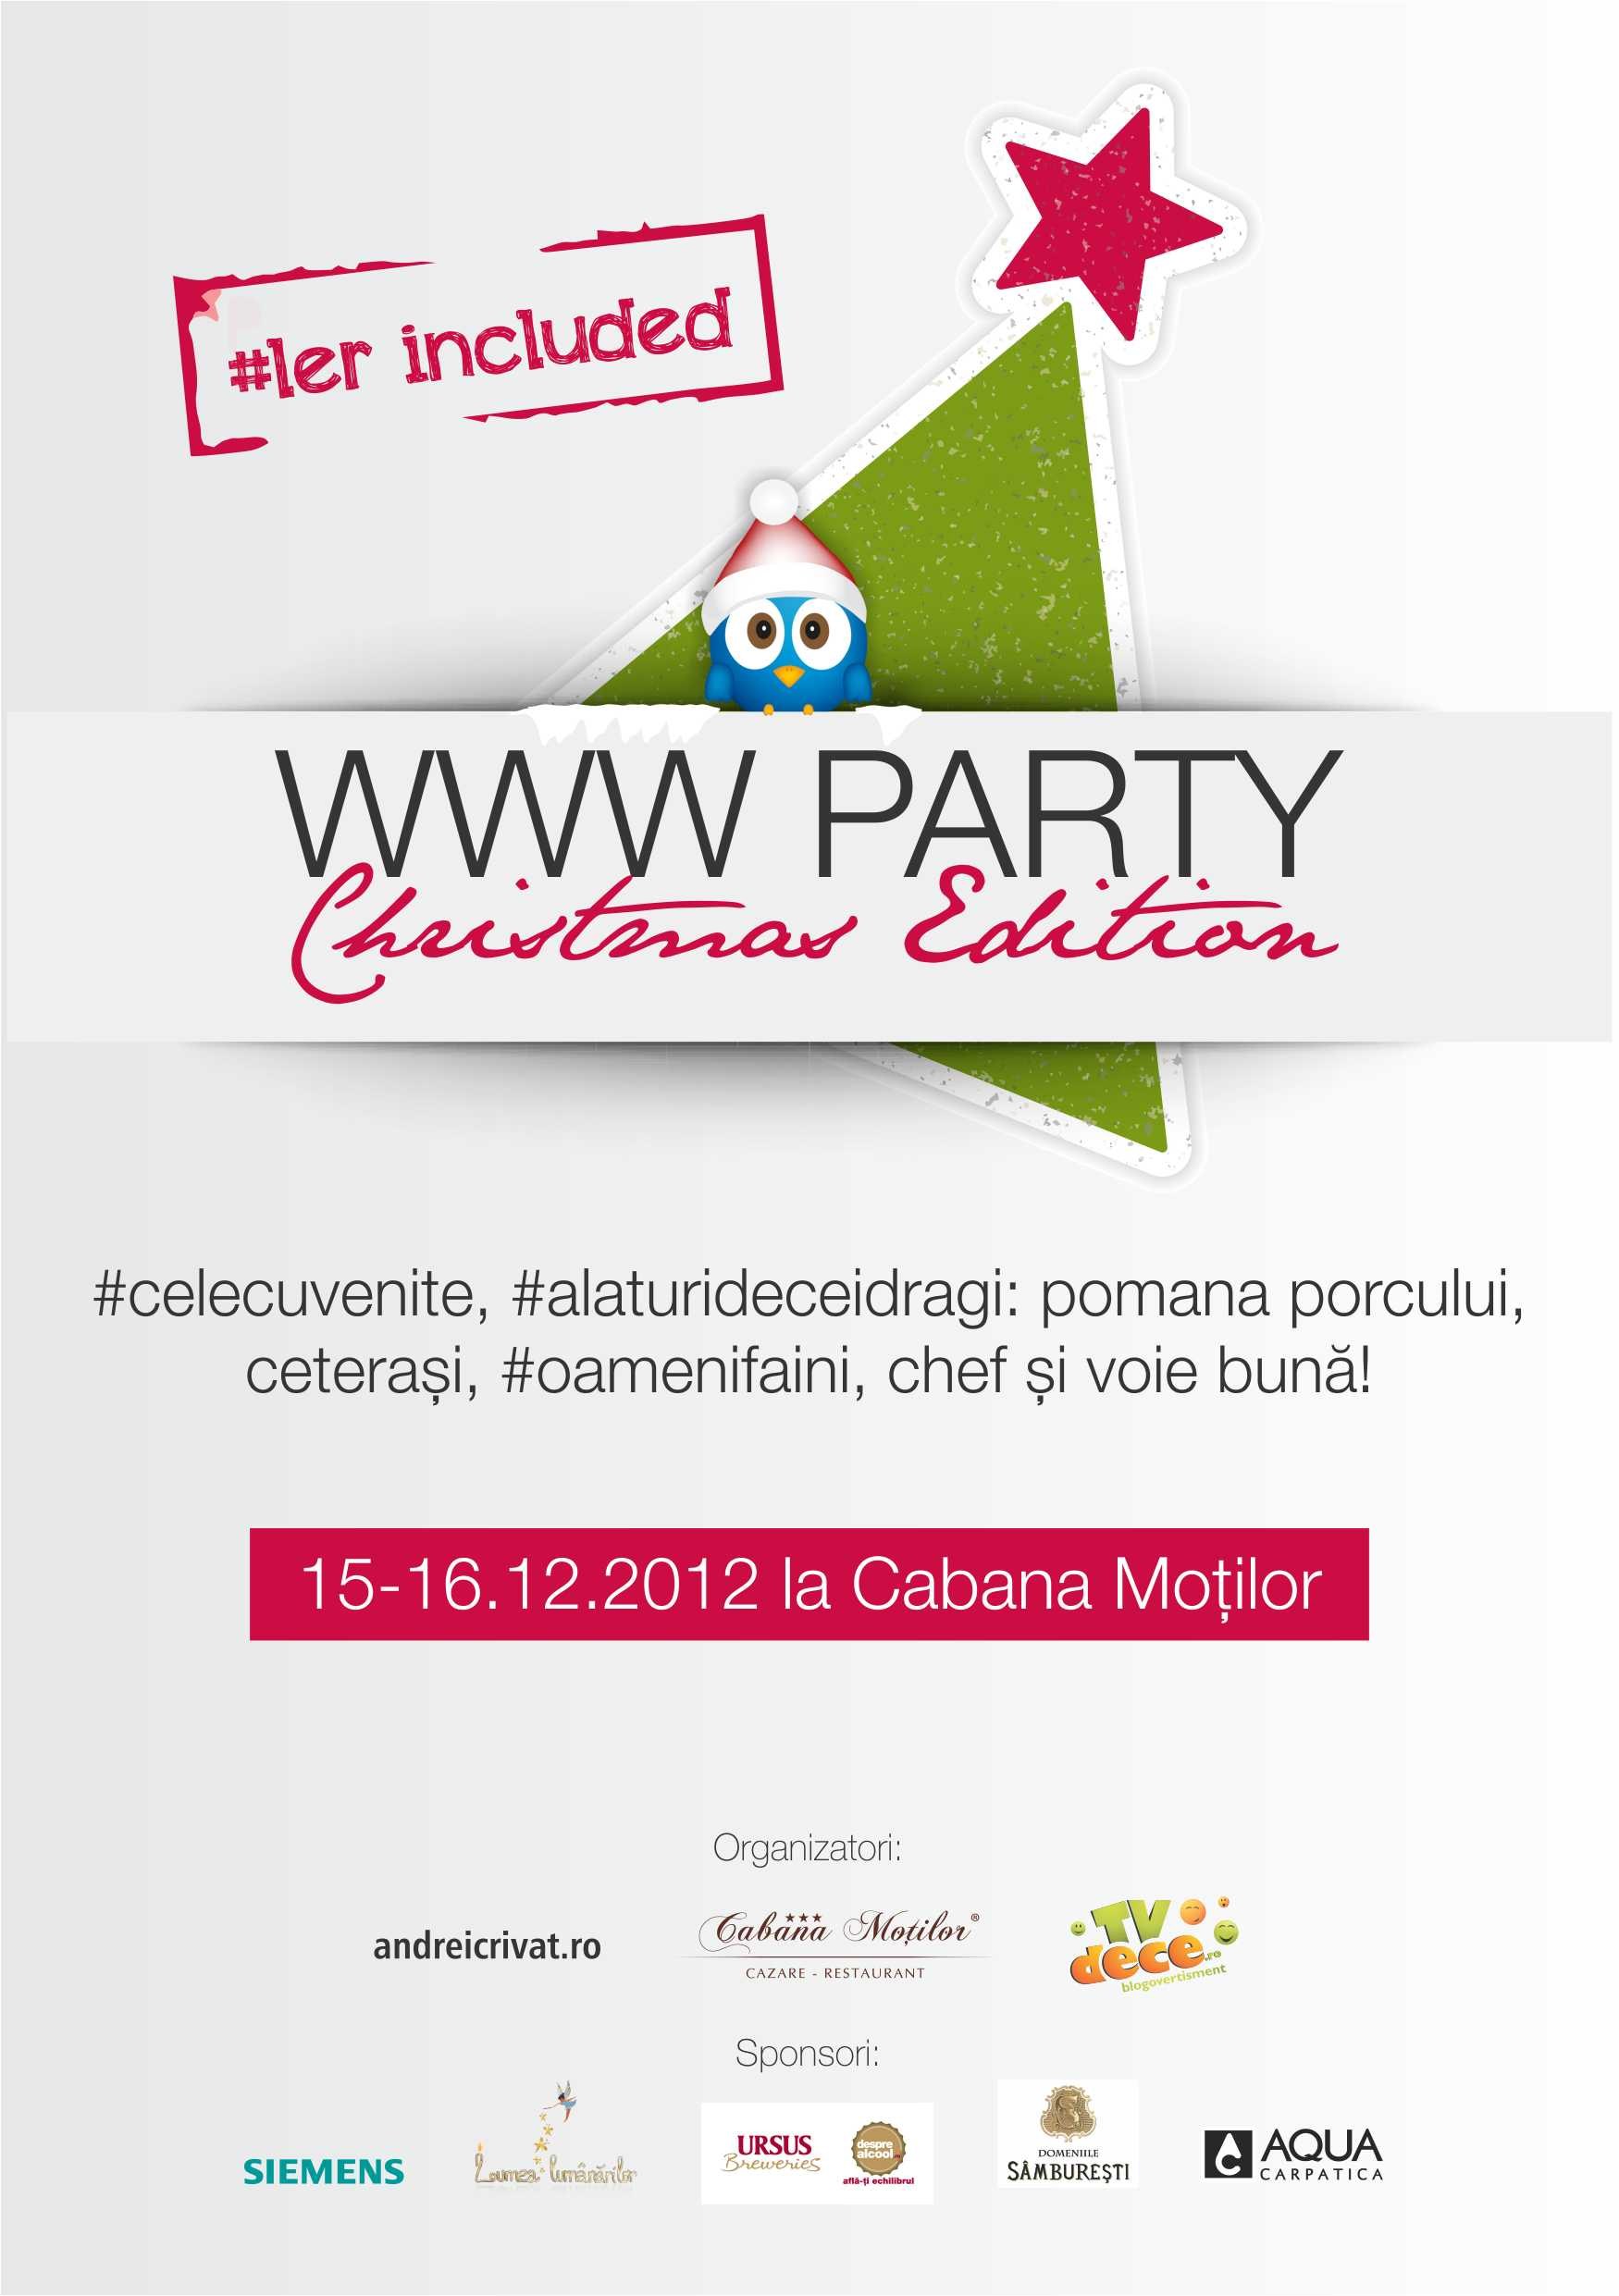 WWW Party, Christmas Edition